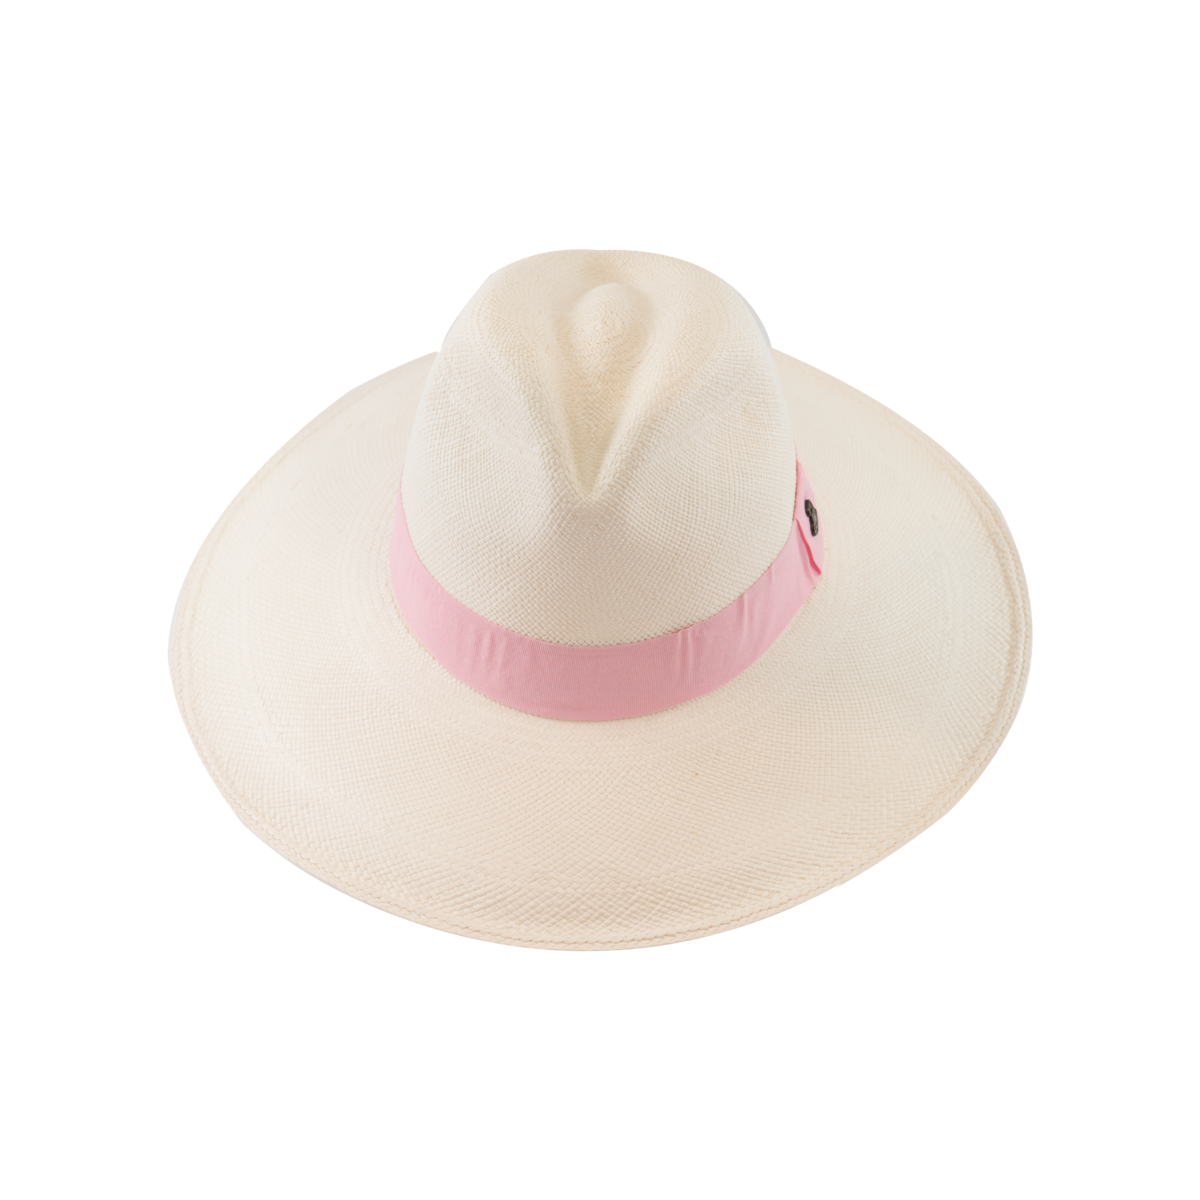 Classic Panama White with Pink Band, Large Brim - product images  of